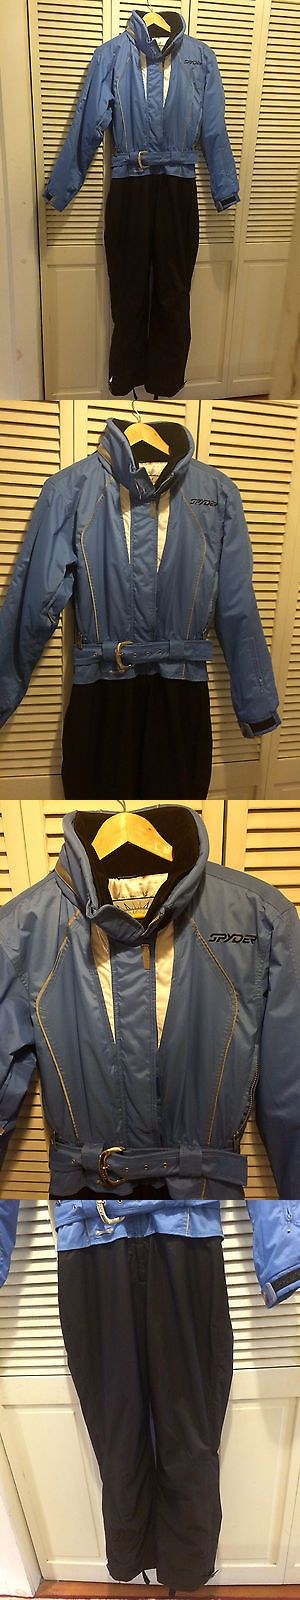 Snowsuits 62178: Spyder One Piece Snowboard Ski Suit Jacket Pants Outfit - Womens 8 -> BUY IT NOW ONLY: $49 on eBay!